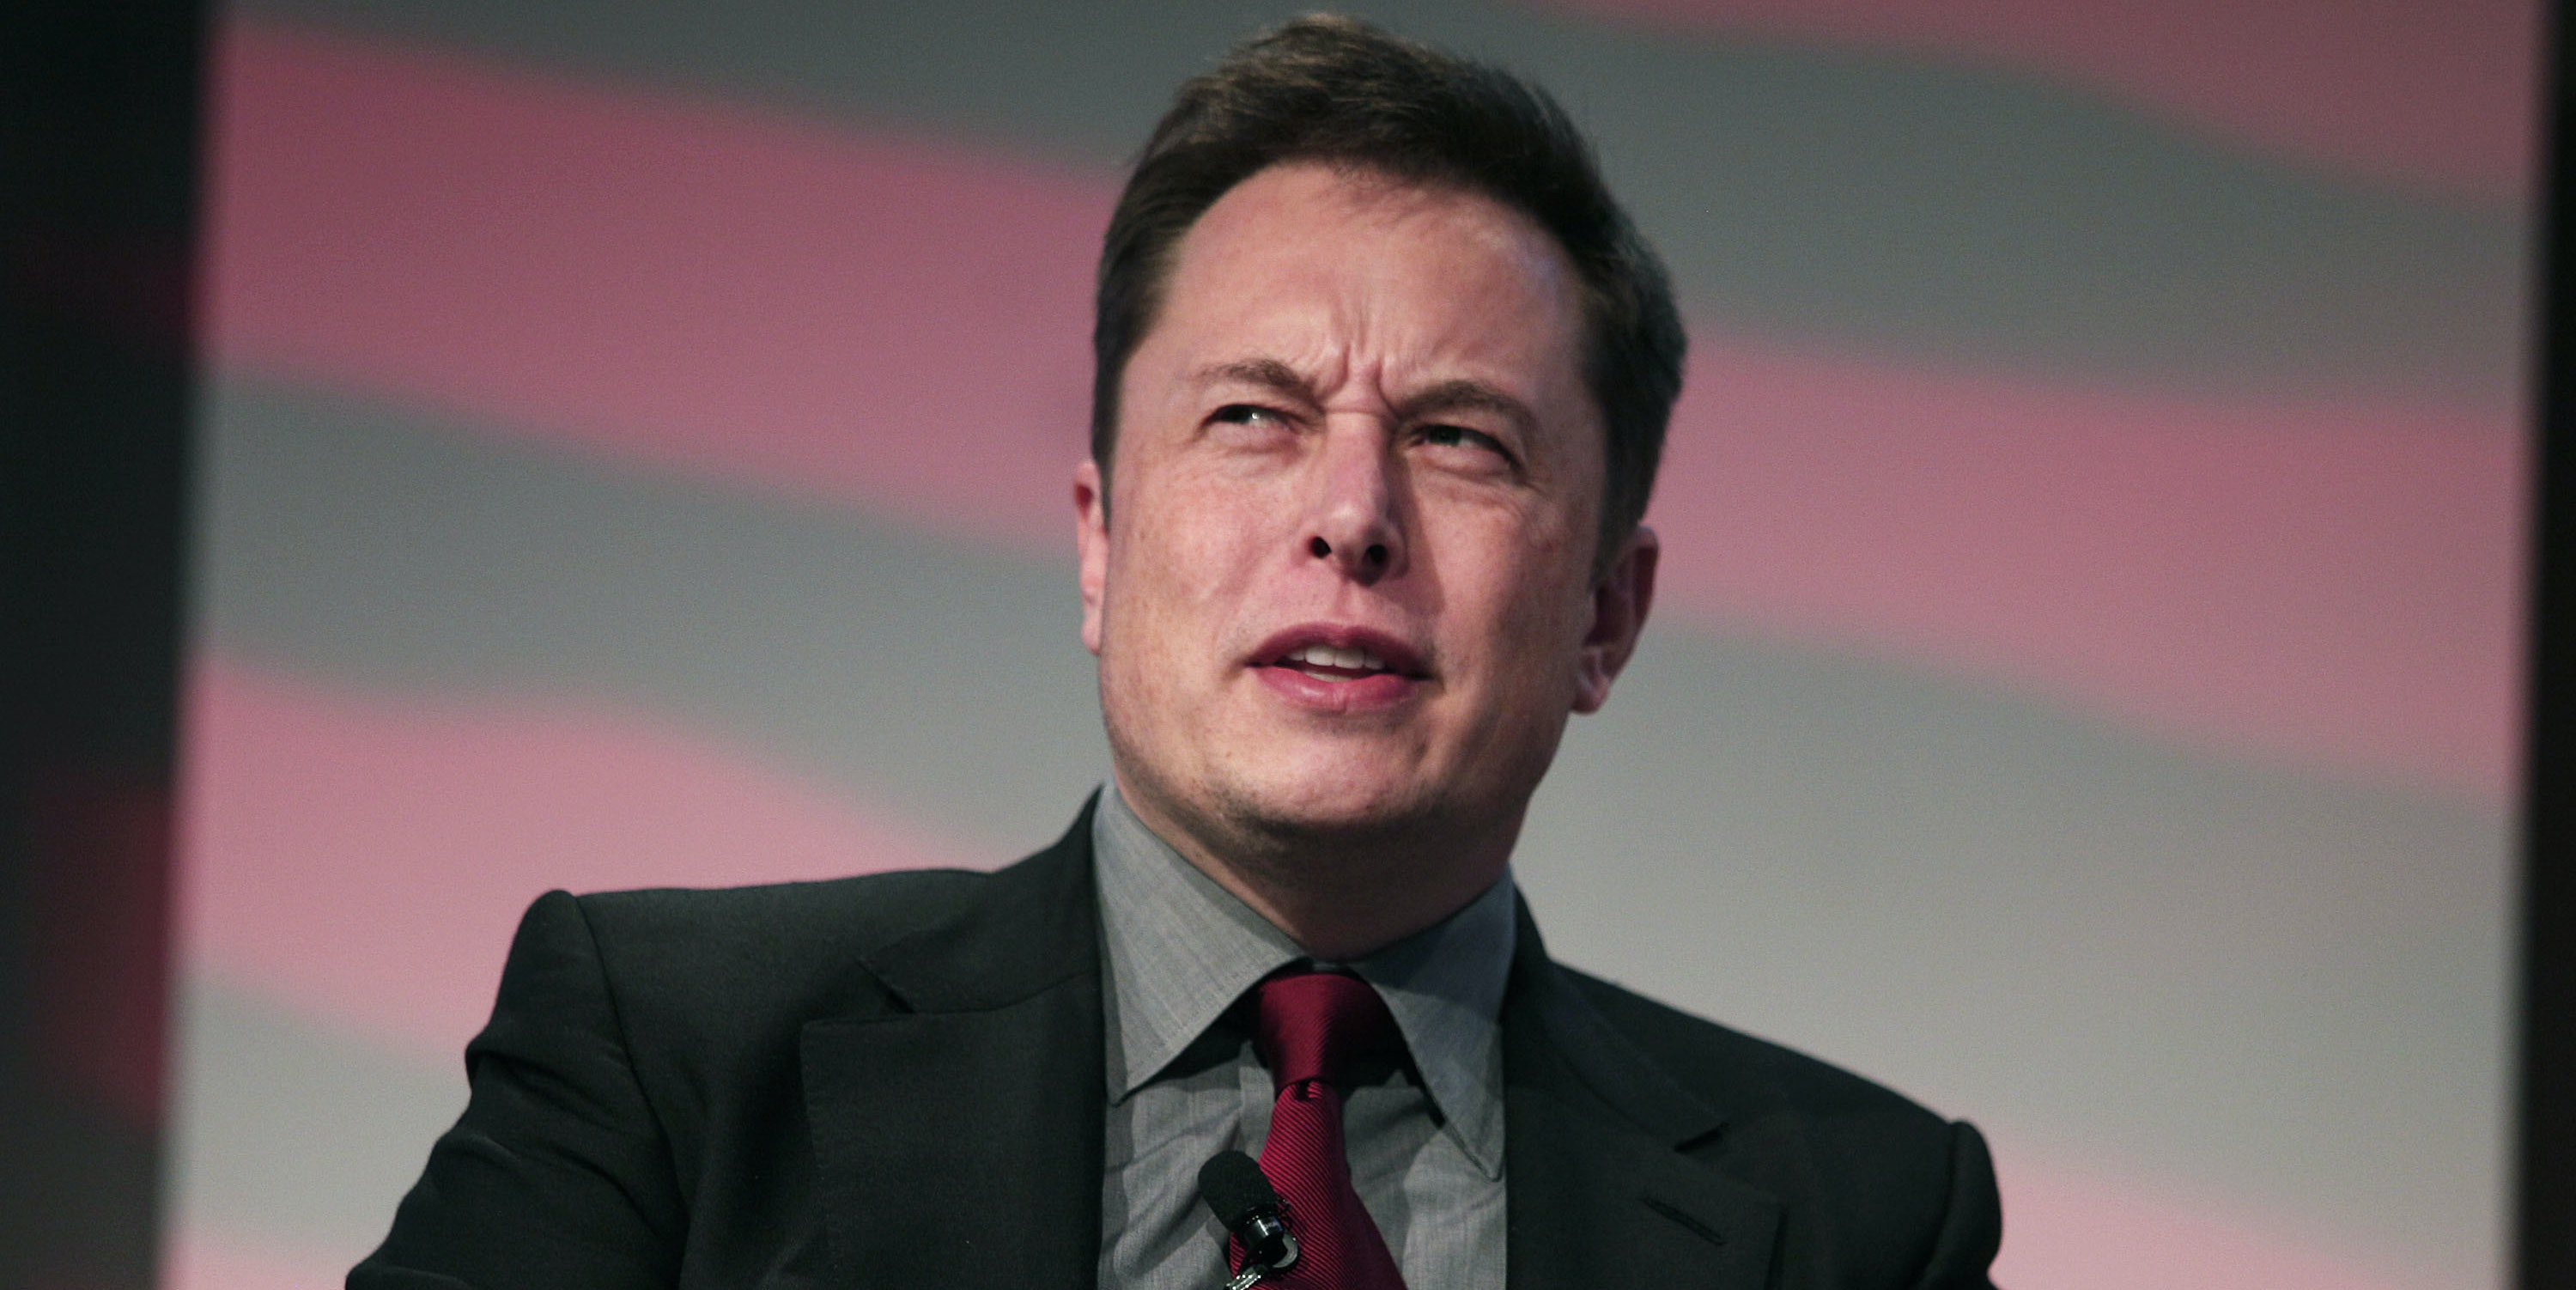 DETROIT, MI - JANUARY 13: Elon Musk, co-founder and CEO of Tesla Motors, speaks at the 2015 Automotive News World Congress January 13, 2015 in Detroit, Michigan. More than 5,000 journalists from around the world will see approximately 45 new vehicles unveiled during the 2015 NAIAS, which opens to the public January 17 and concludes January 25.  (Photo by Bill Pugliano/Getty Images)